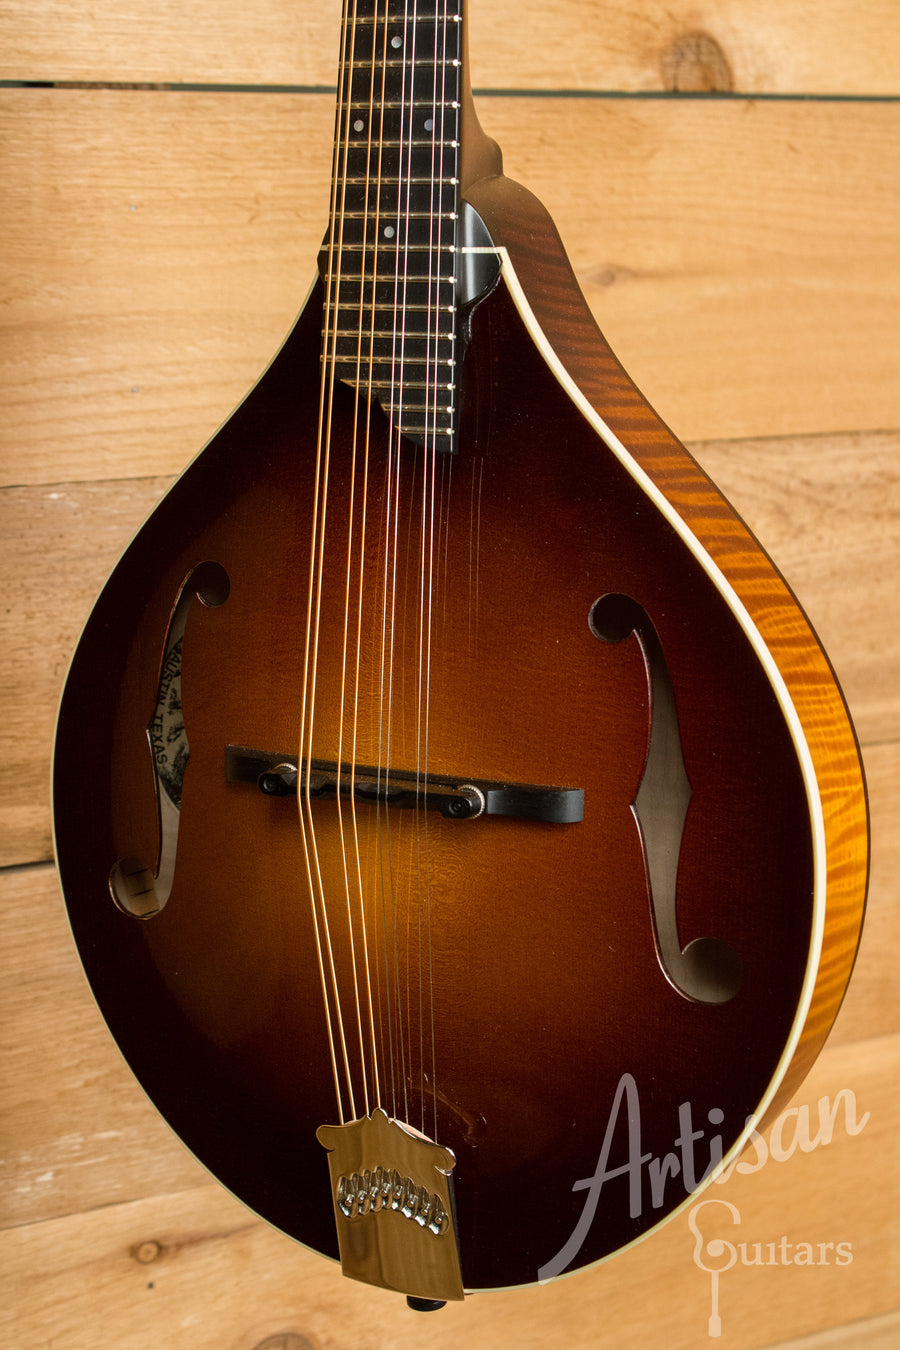 Collings MT Mandolin Engelmann Spruce and Maple A Style with Custom Sunburst Gloss Top Pre-Owned 2013 ID-11068